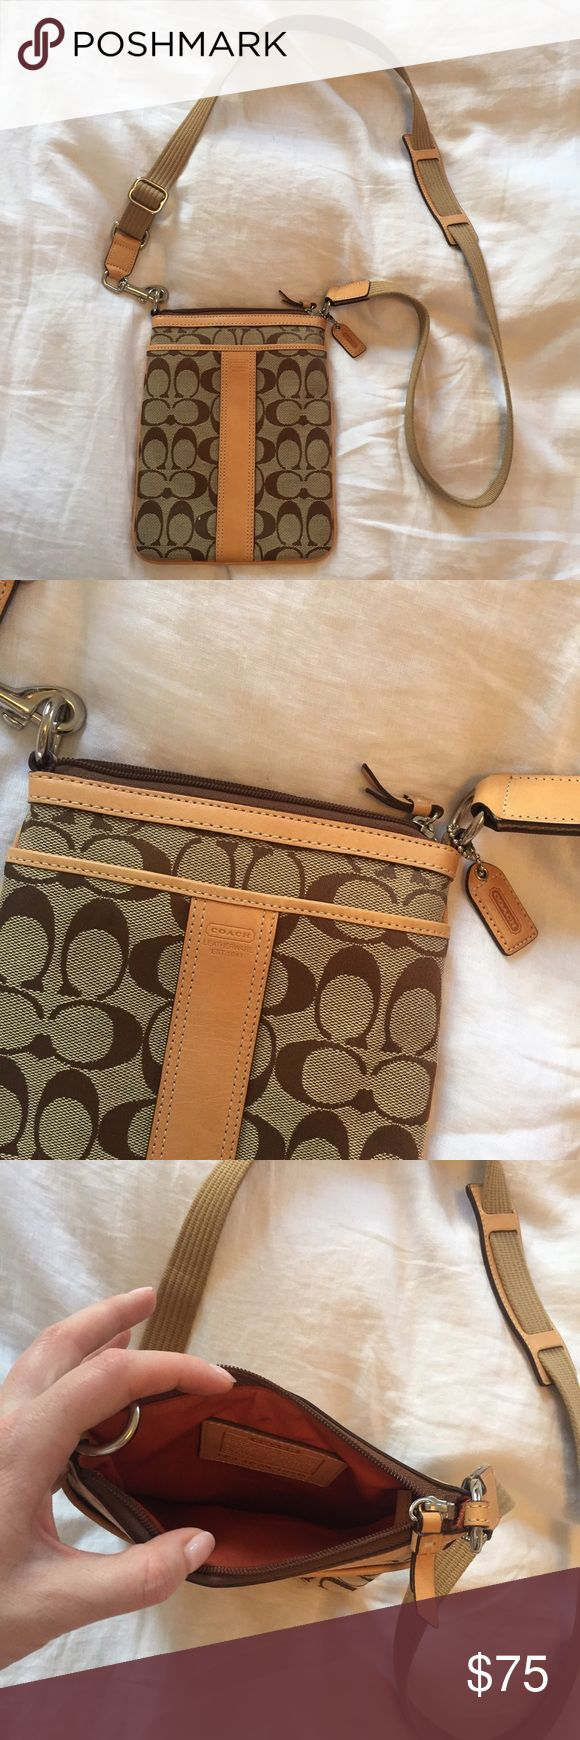 Coach Swingpack Like-new condition. Canvas strap with shoulder pad, canvas with beautiful leather trim. Coach Bags Crossbody Bags